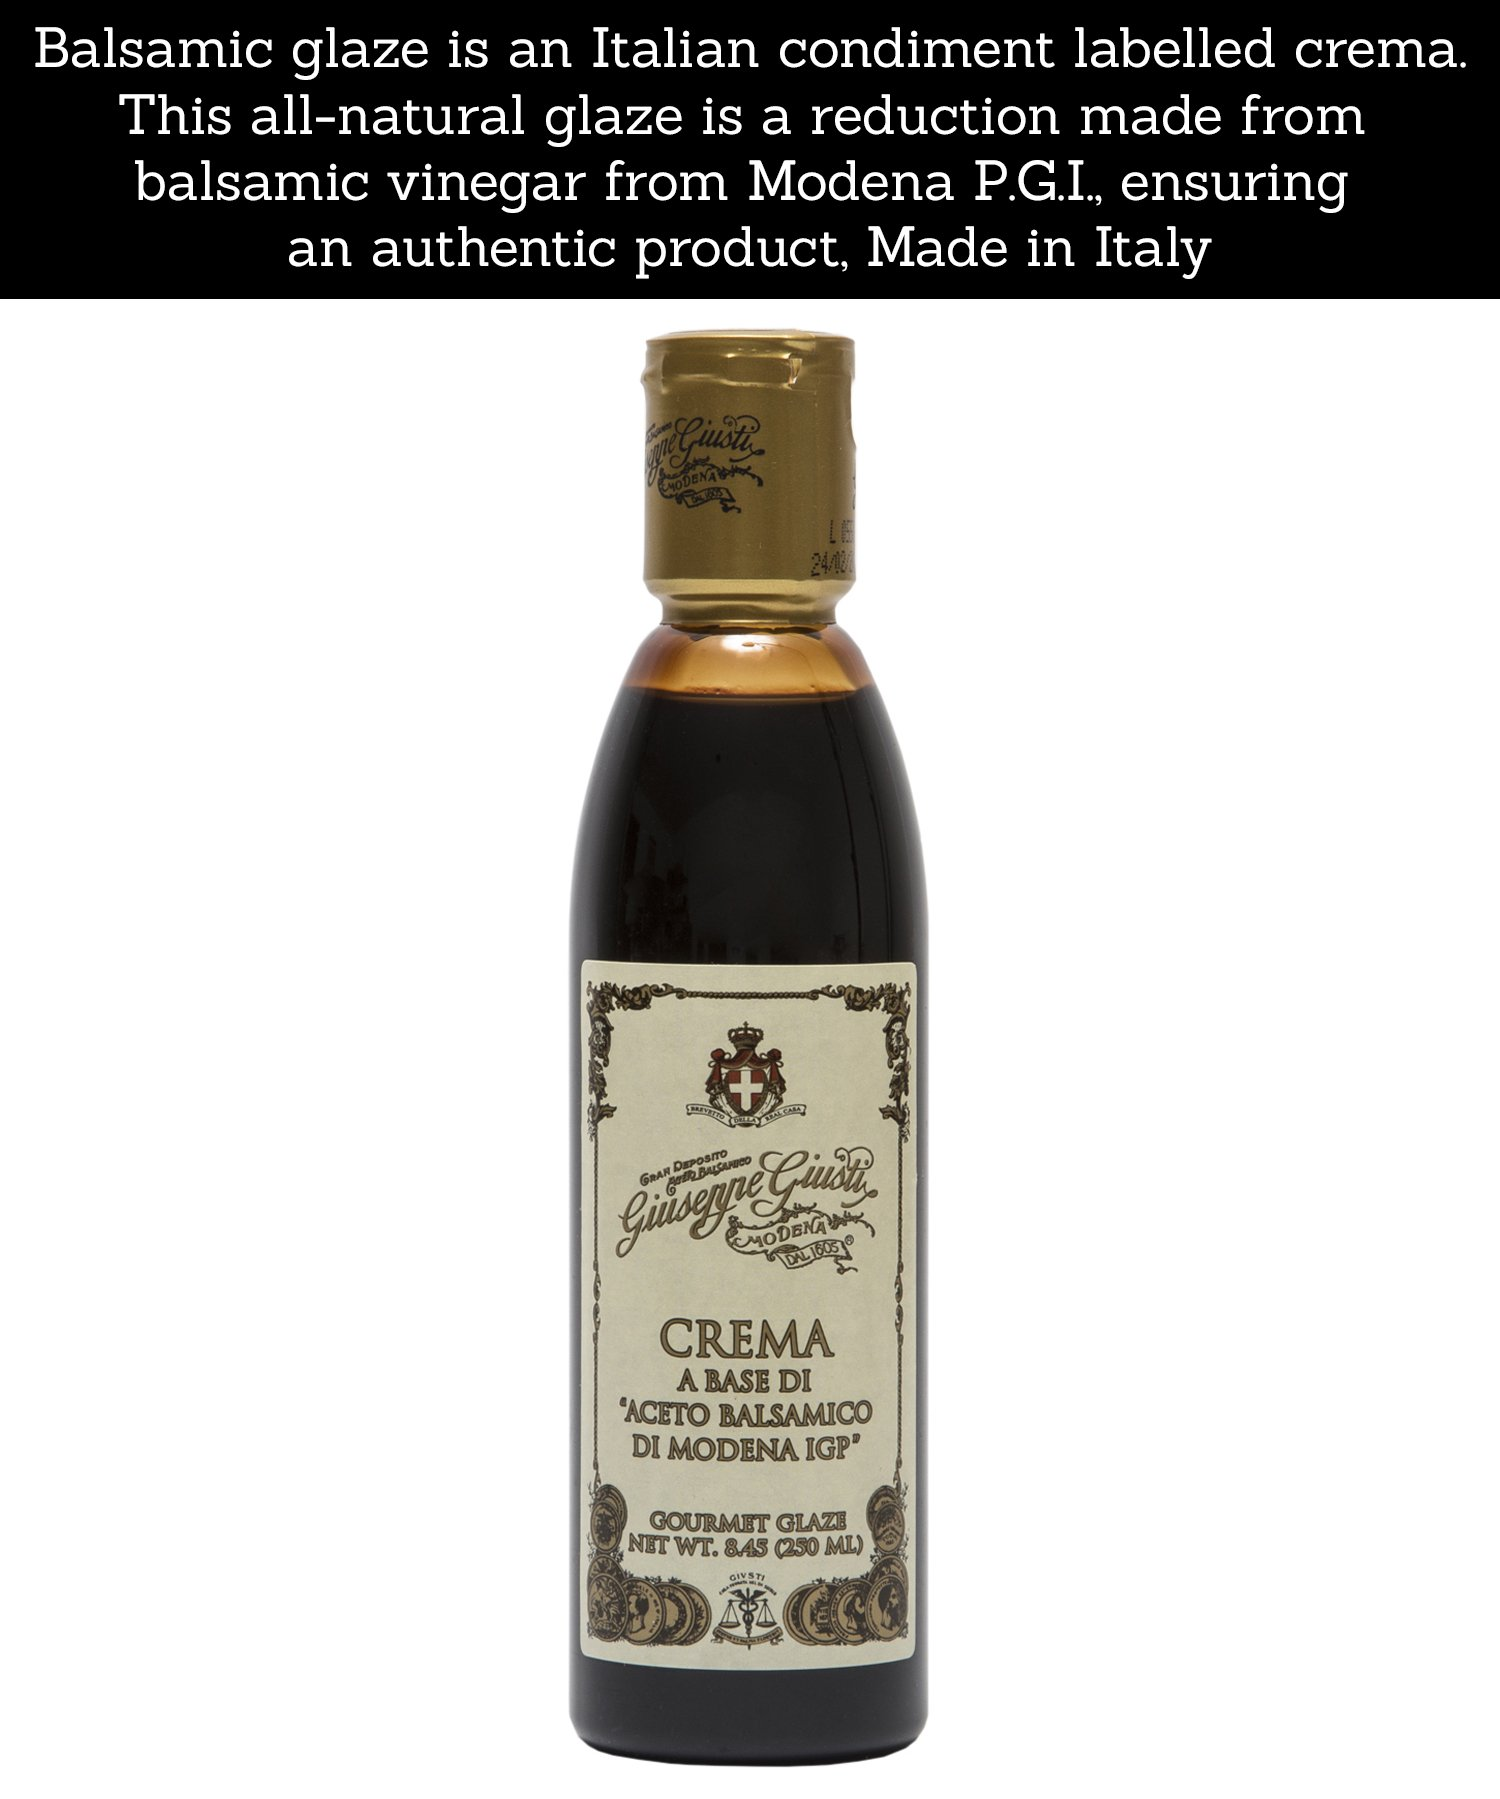 Giuseppe Giusti Italian Blasamic Vinegar Reduction of Modena IGP Reduction 8.45 fl oz (250ml) 3 🍇 ITALIAN MADE: Premium gourmet balsamic glaze that is imported and made in Italy. 🍇 INGREDIENTS: This all natural glaze is a reduction made from balsamic vinegar from Modena P.G.I., ensuring an authentic product 🍇 FLAVOR: Balsamic reductions create a rich, flavorful, syrupy-like glaze.